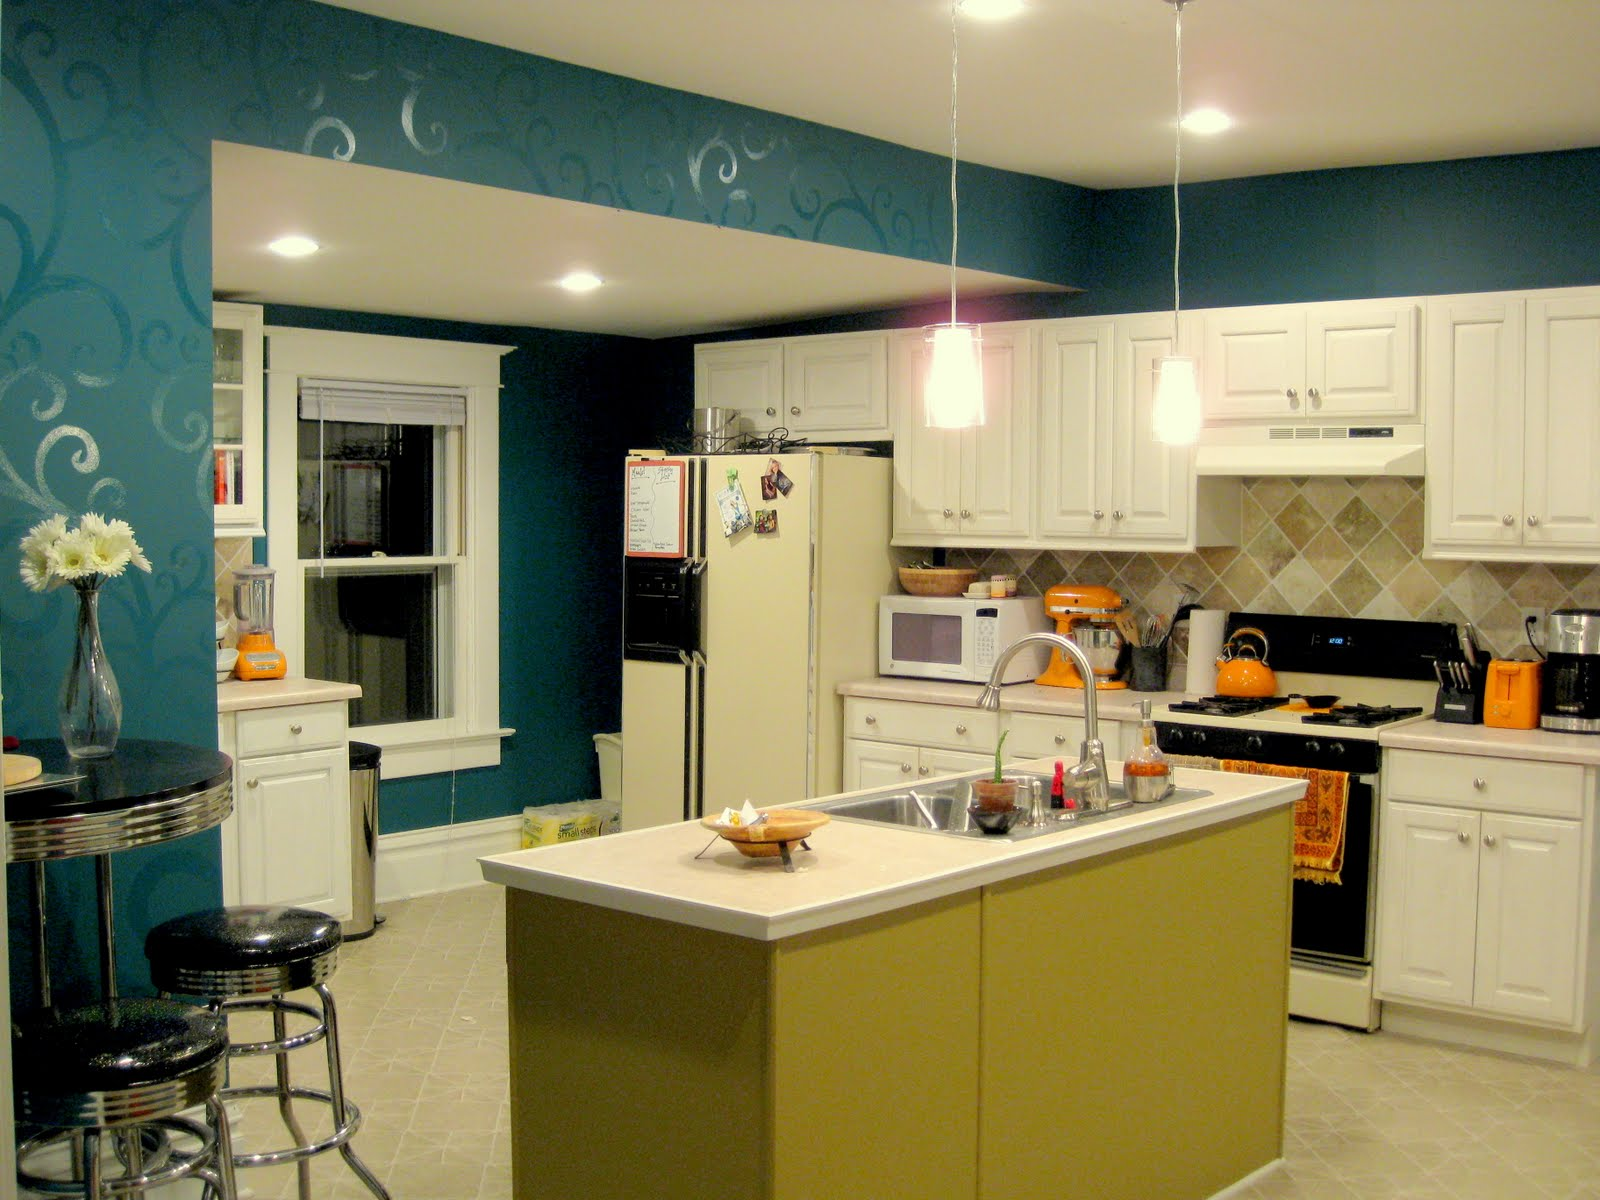 Remodelaholic | Kitchen Before and After; Decorative Painted Walls